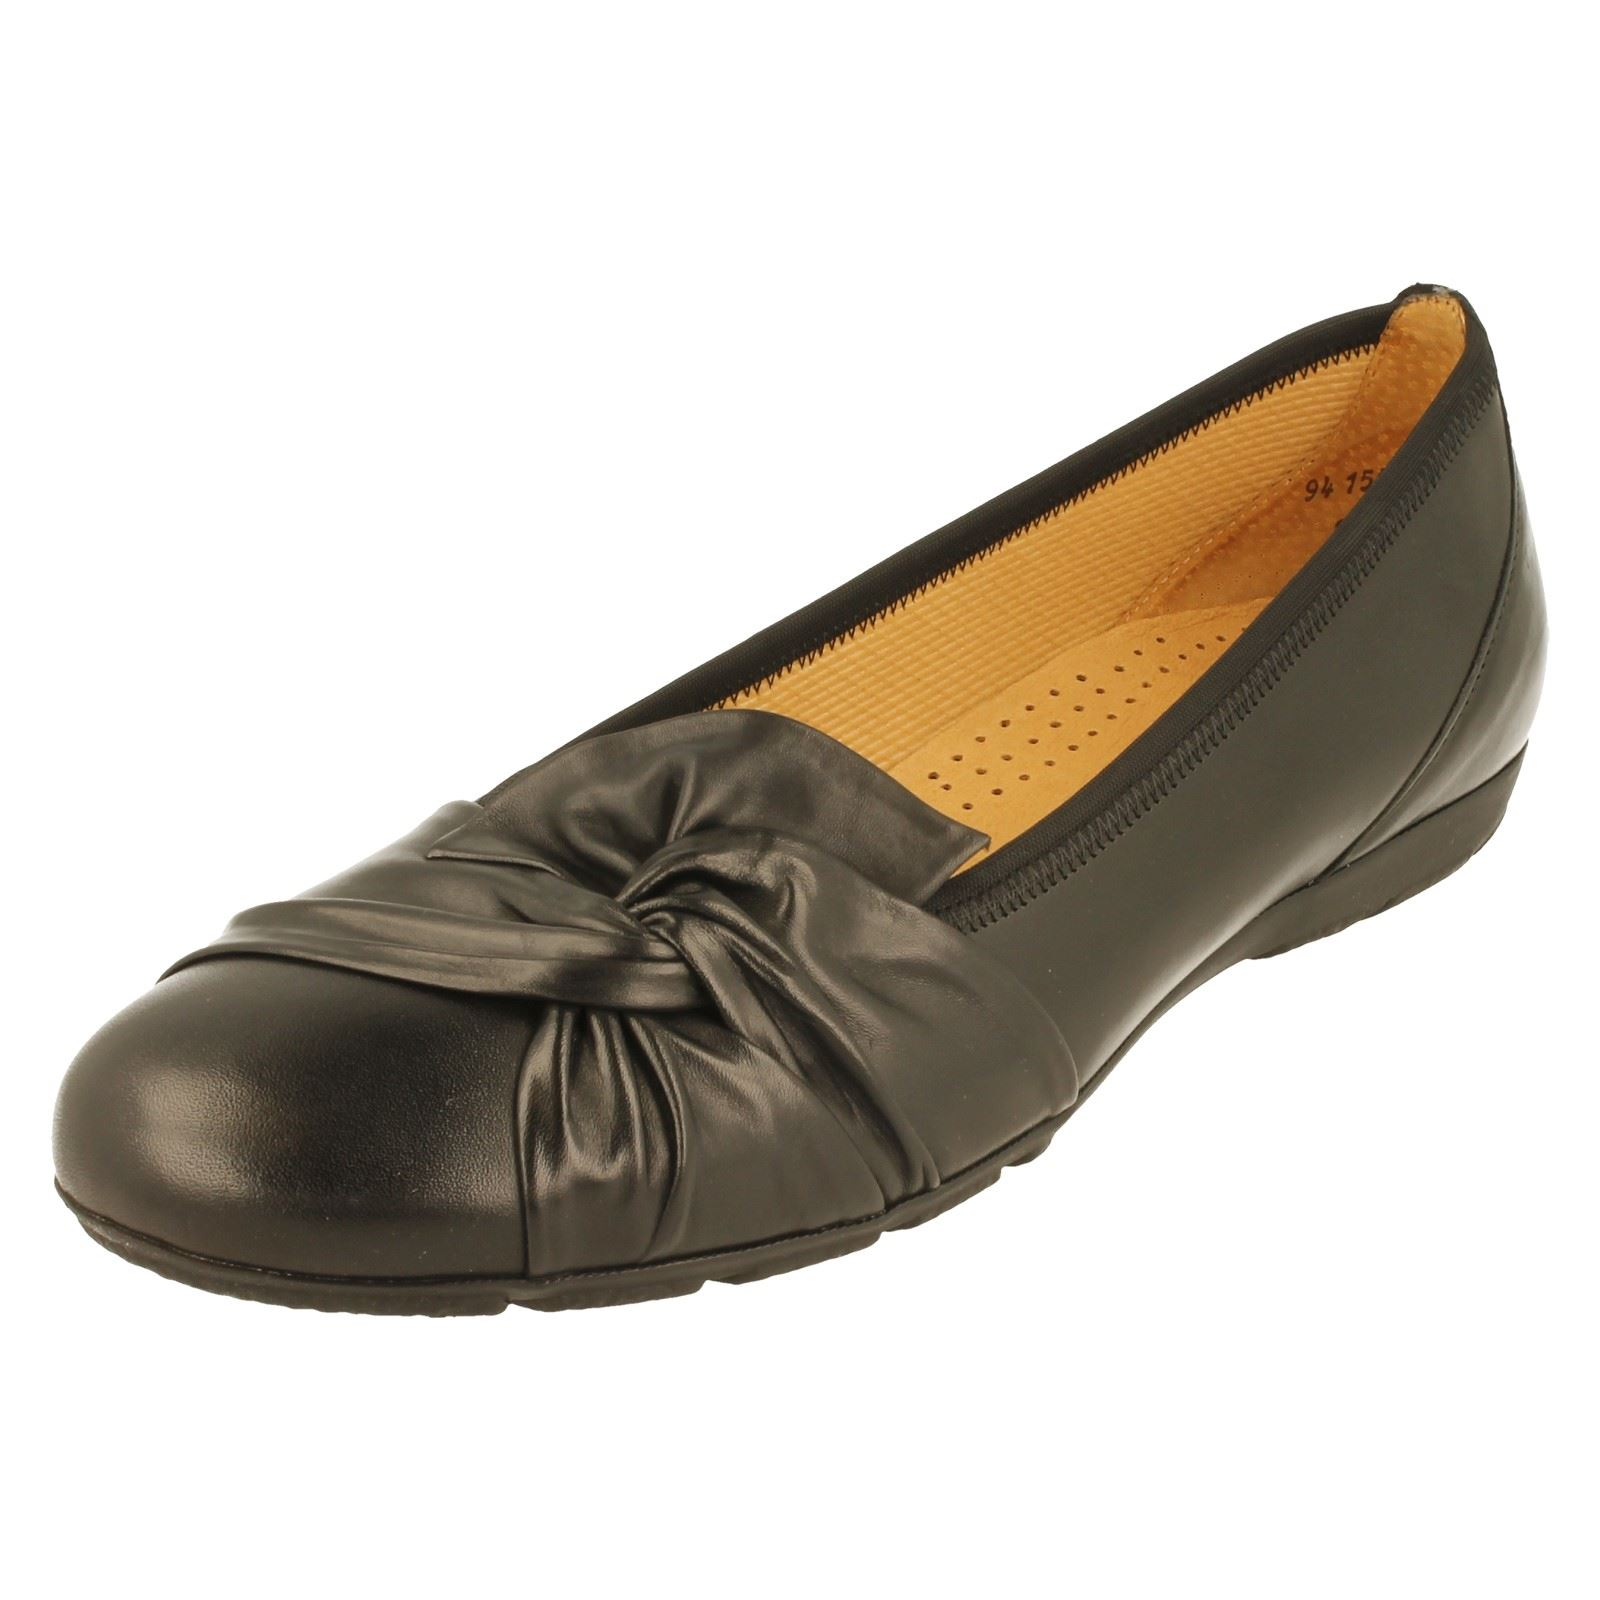 Details about Ladies Gabor Ballerina Shoe '94150'